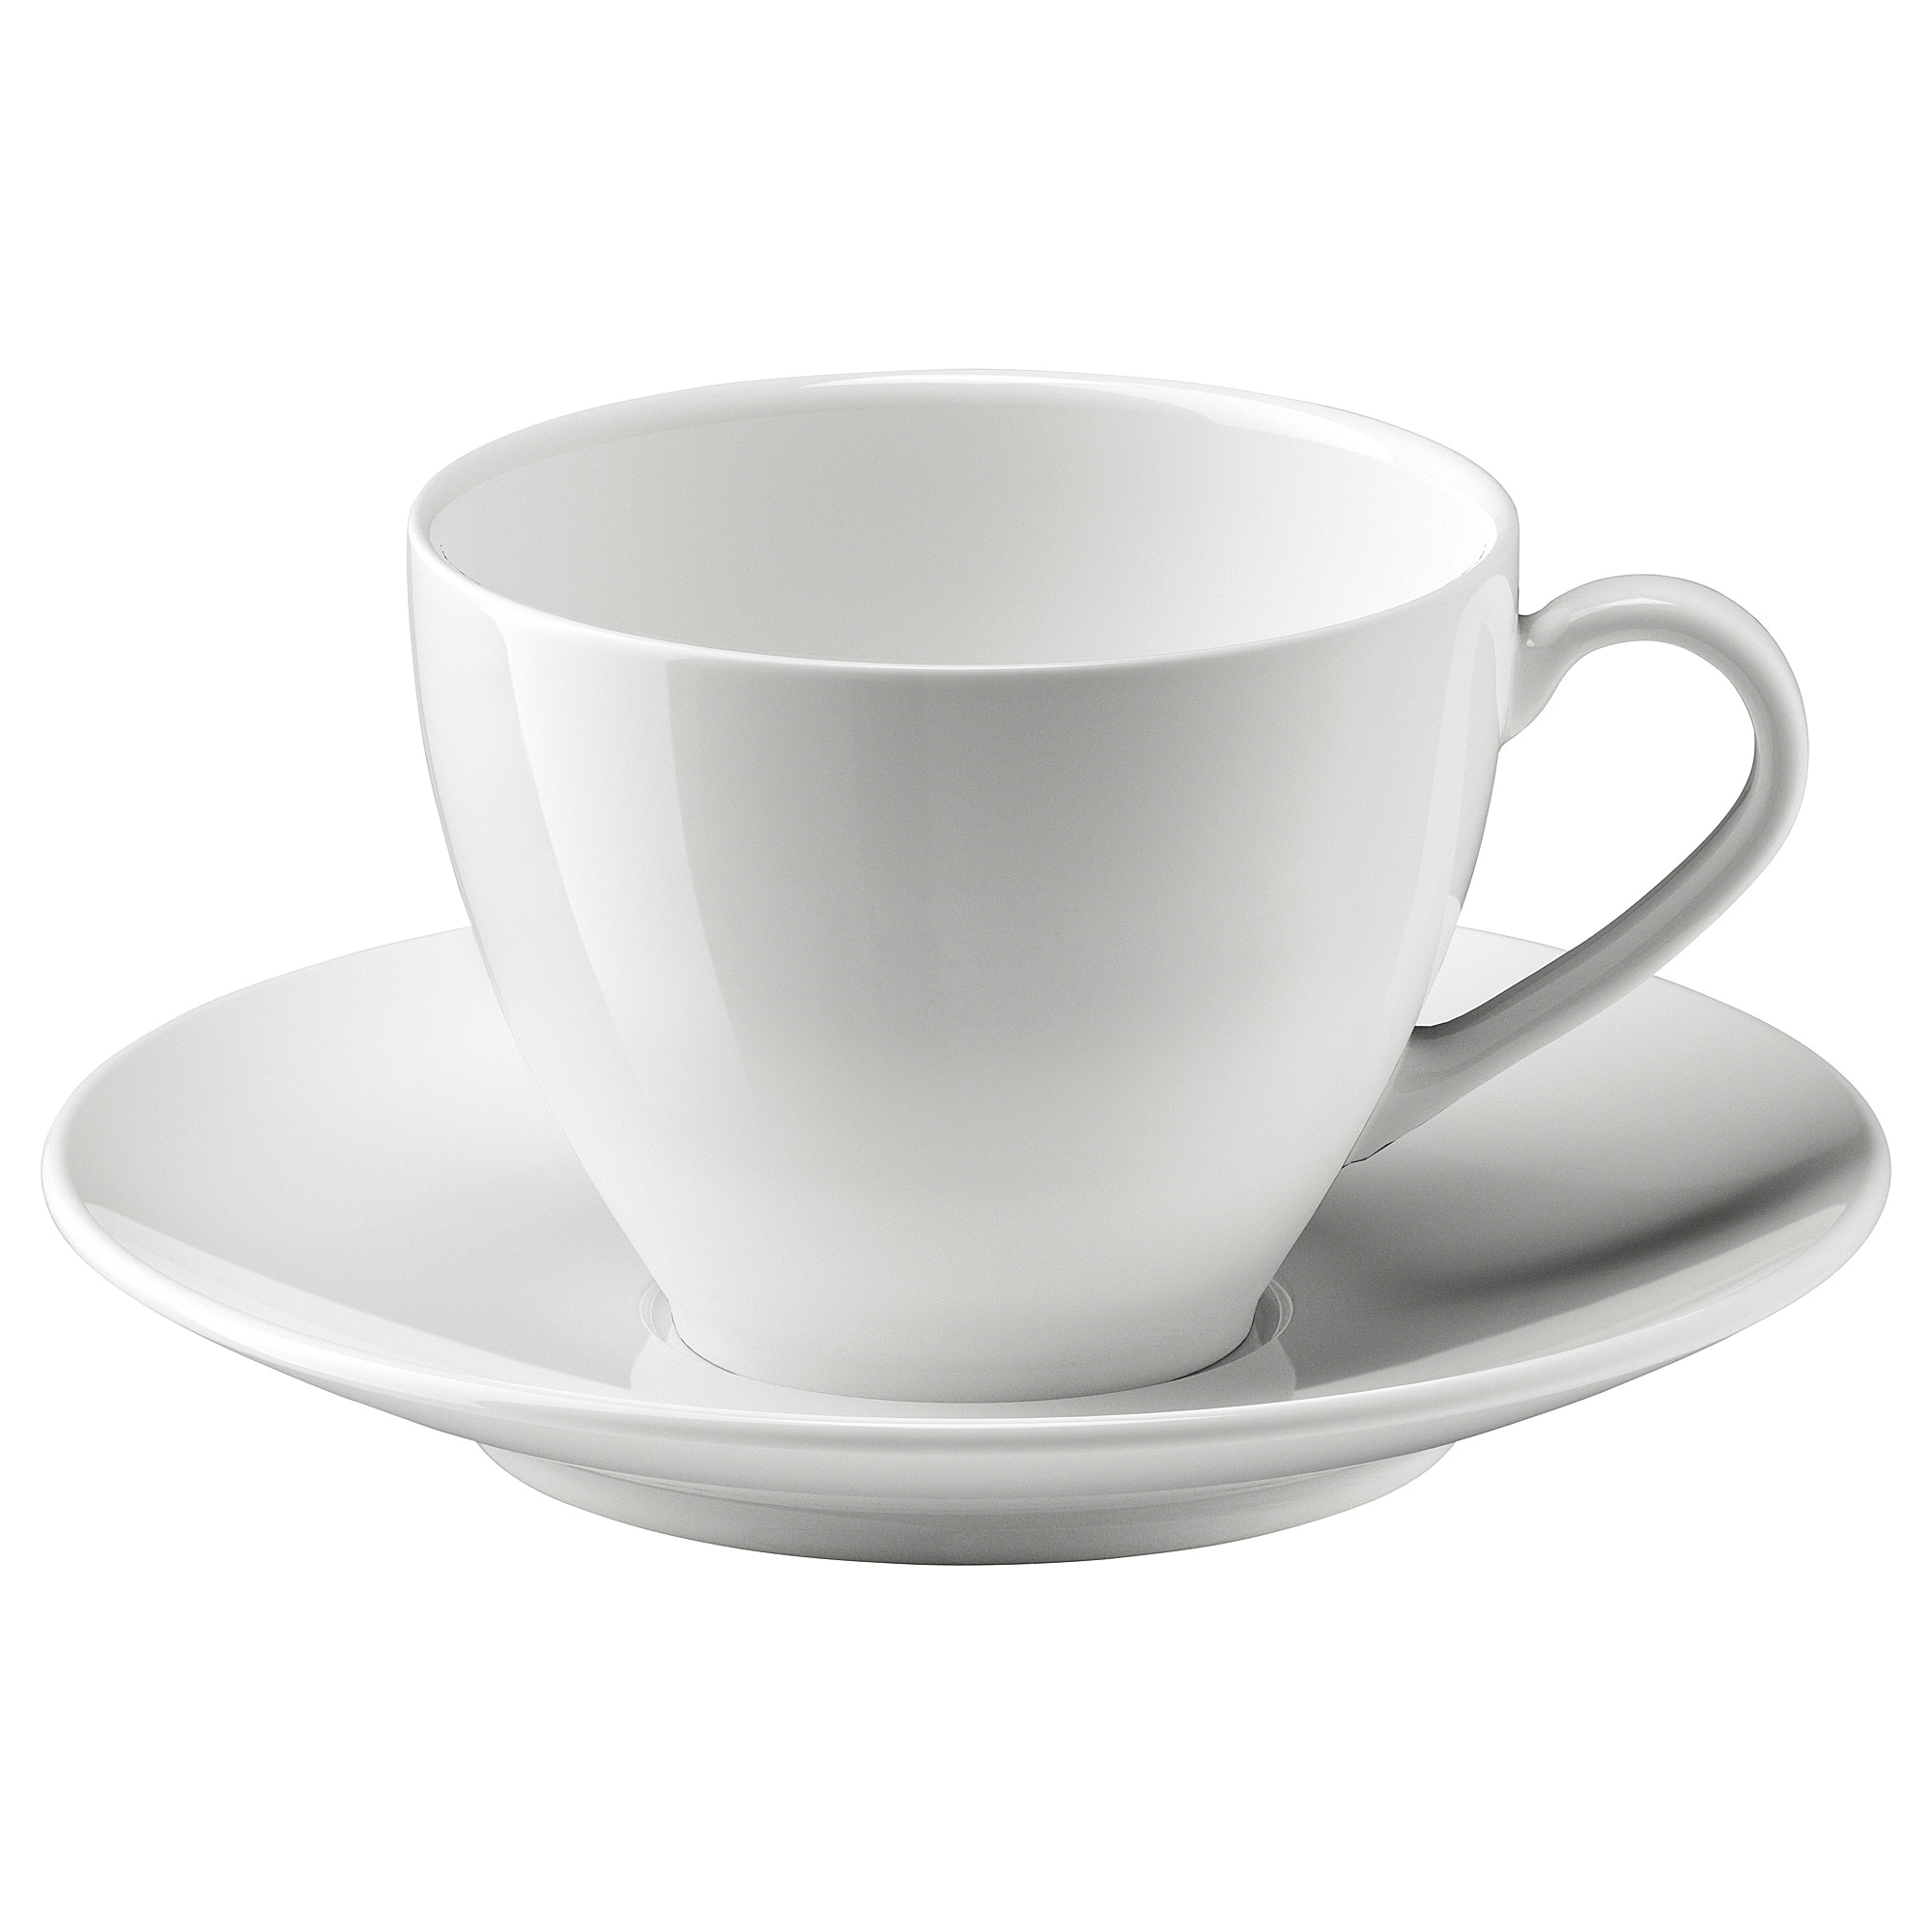 V 196 Rdera Coffee Cup And Saucer White Ikea